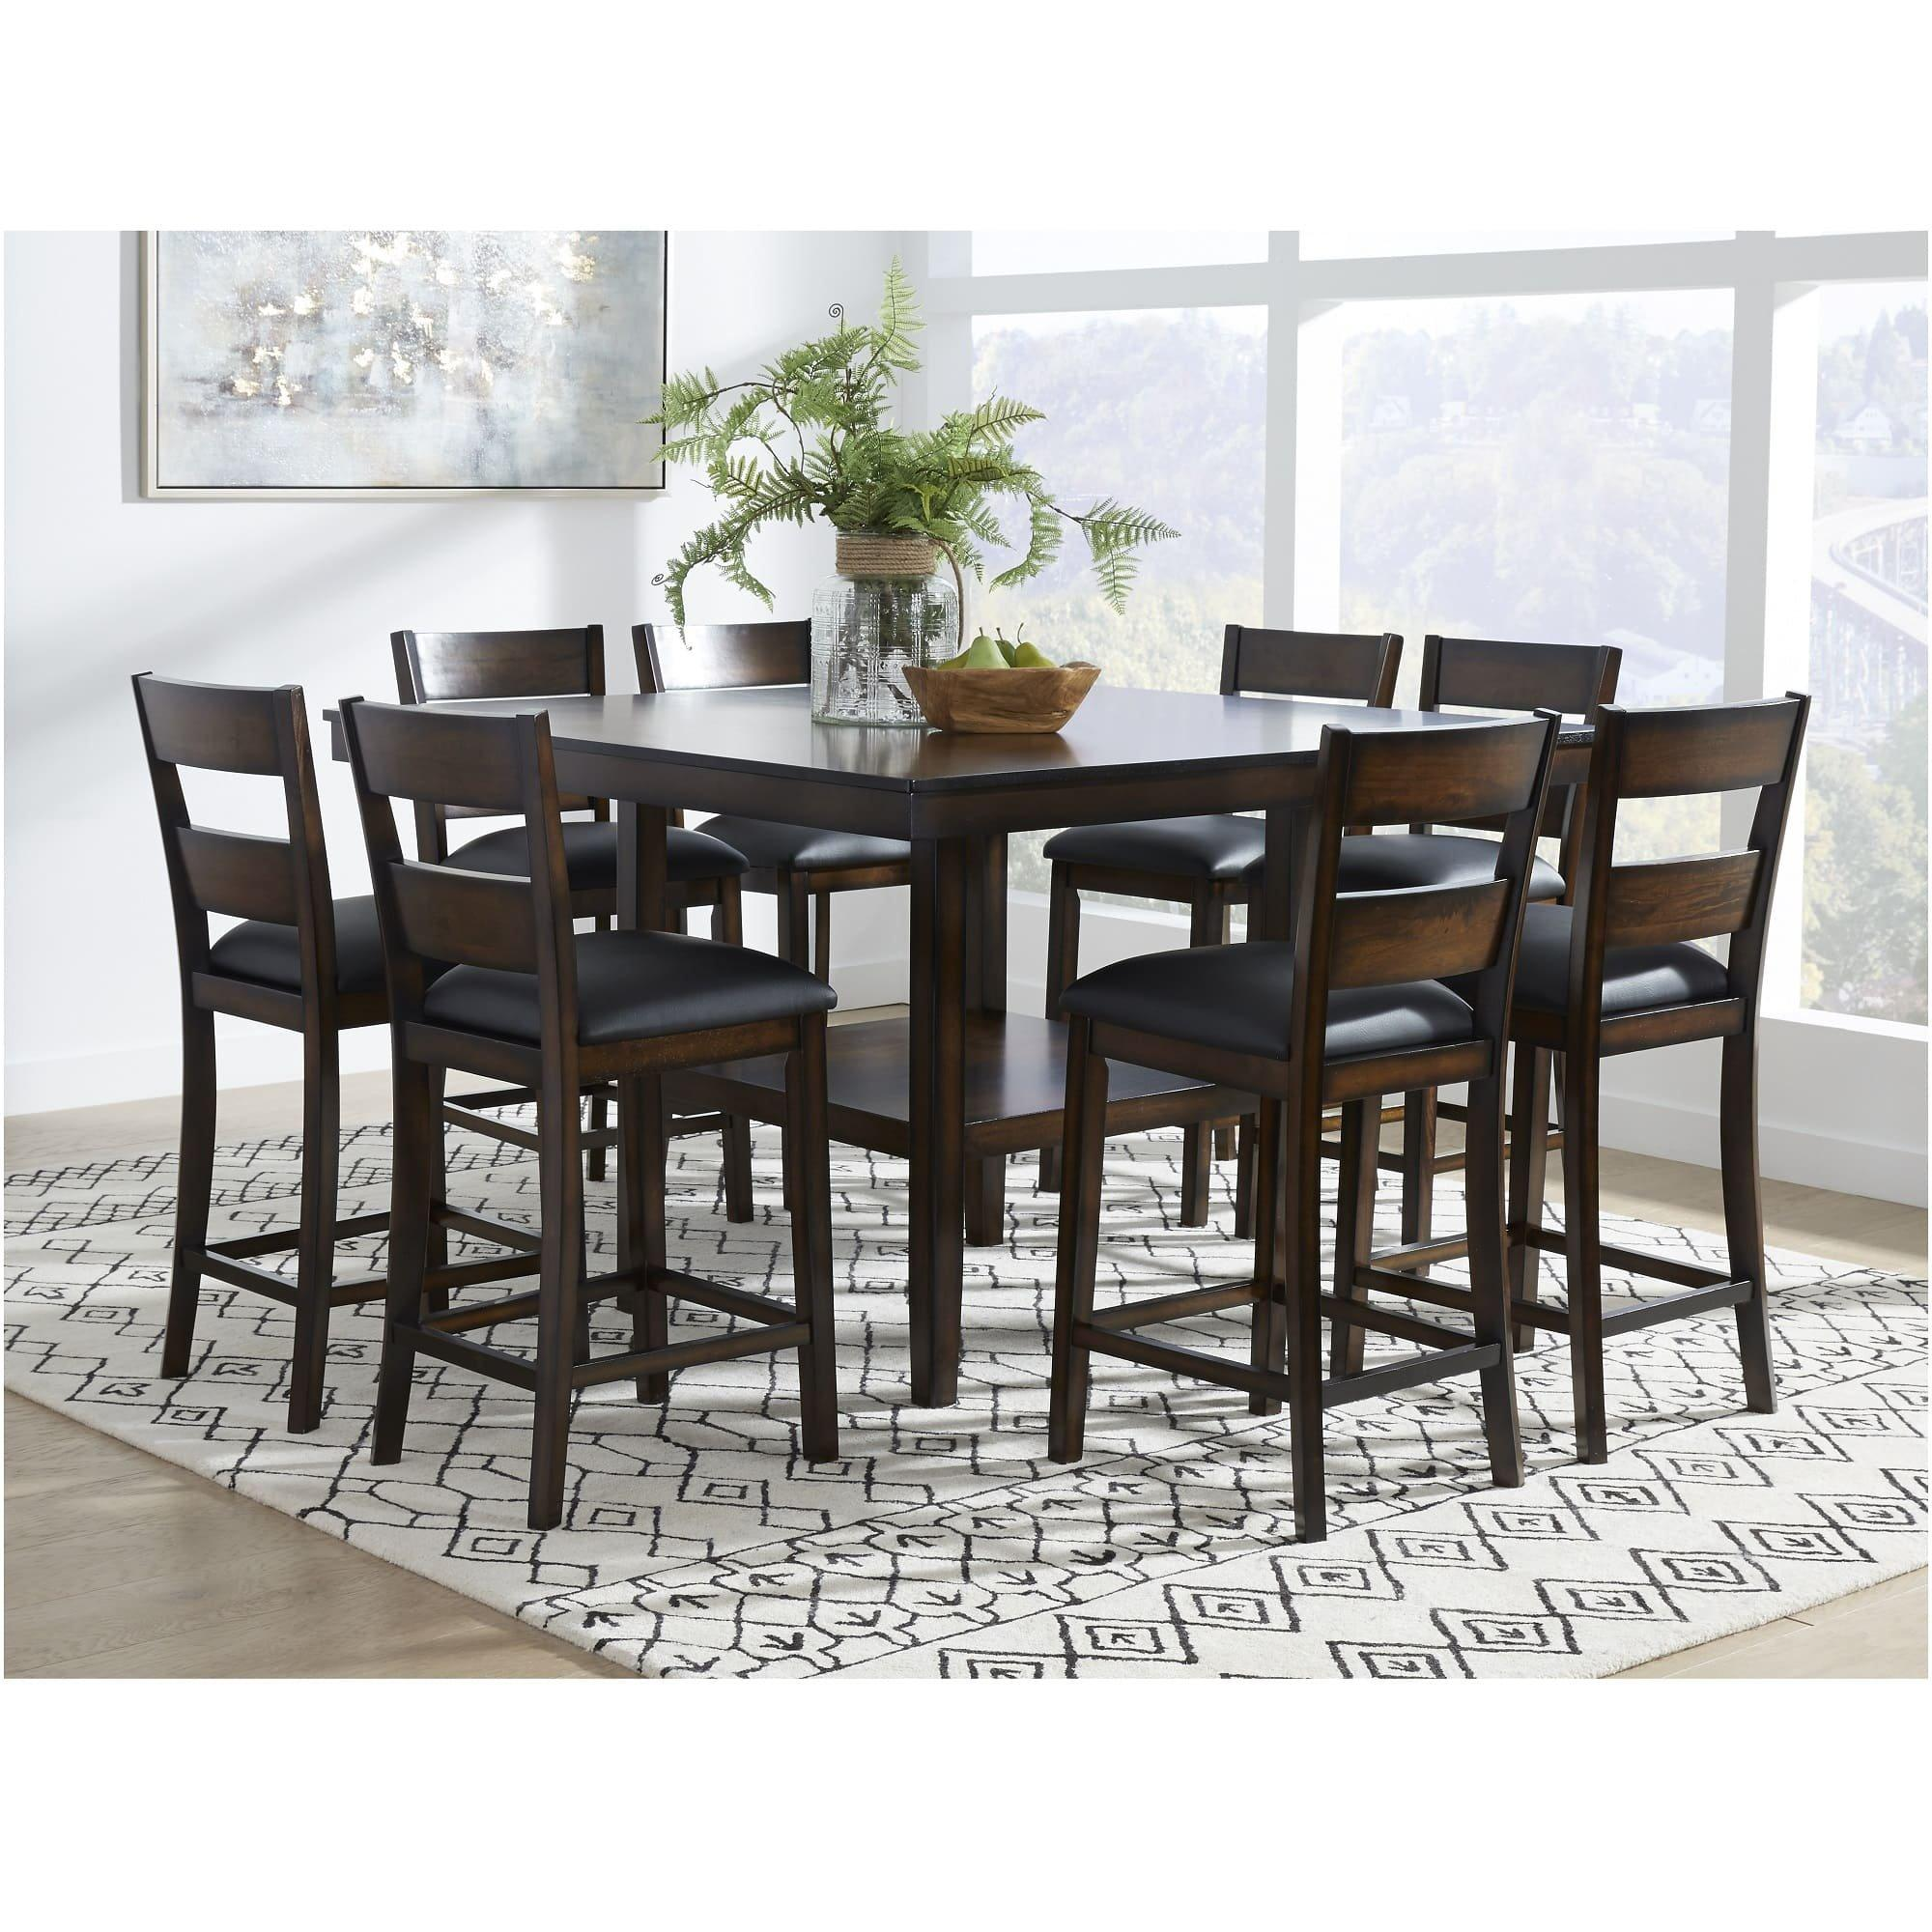 Rent To Own Standard 9 Piece Delaney Counter Height Dining Room Collection At Aaron S Today